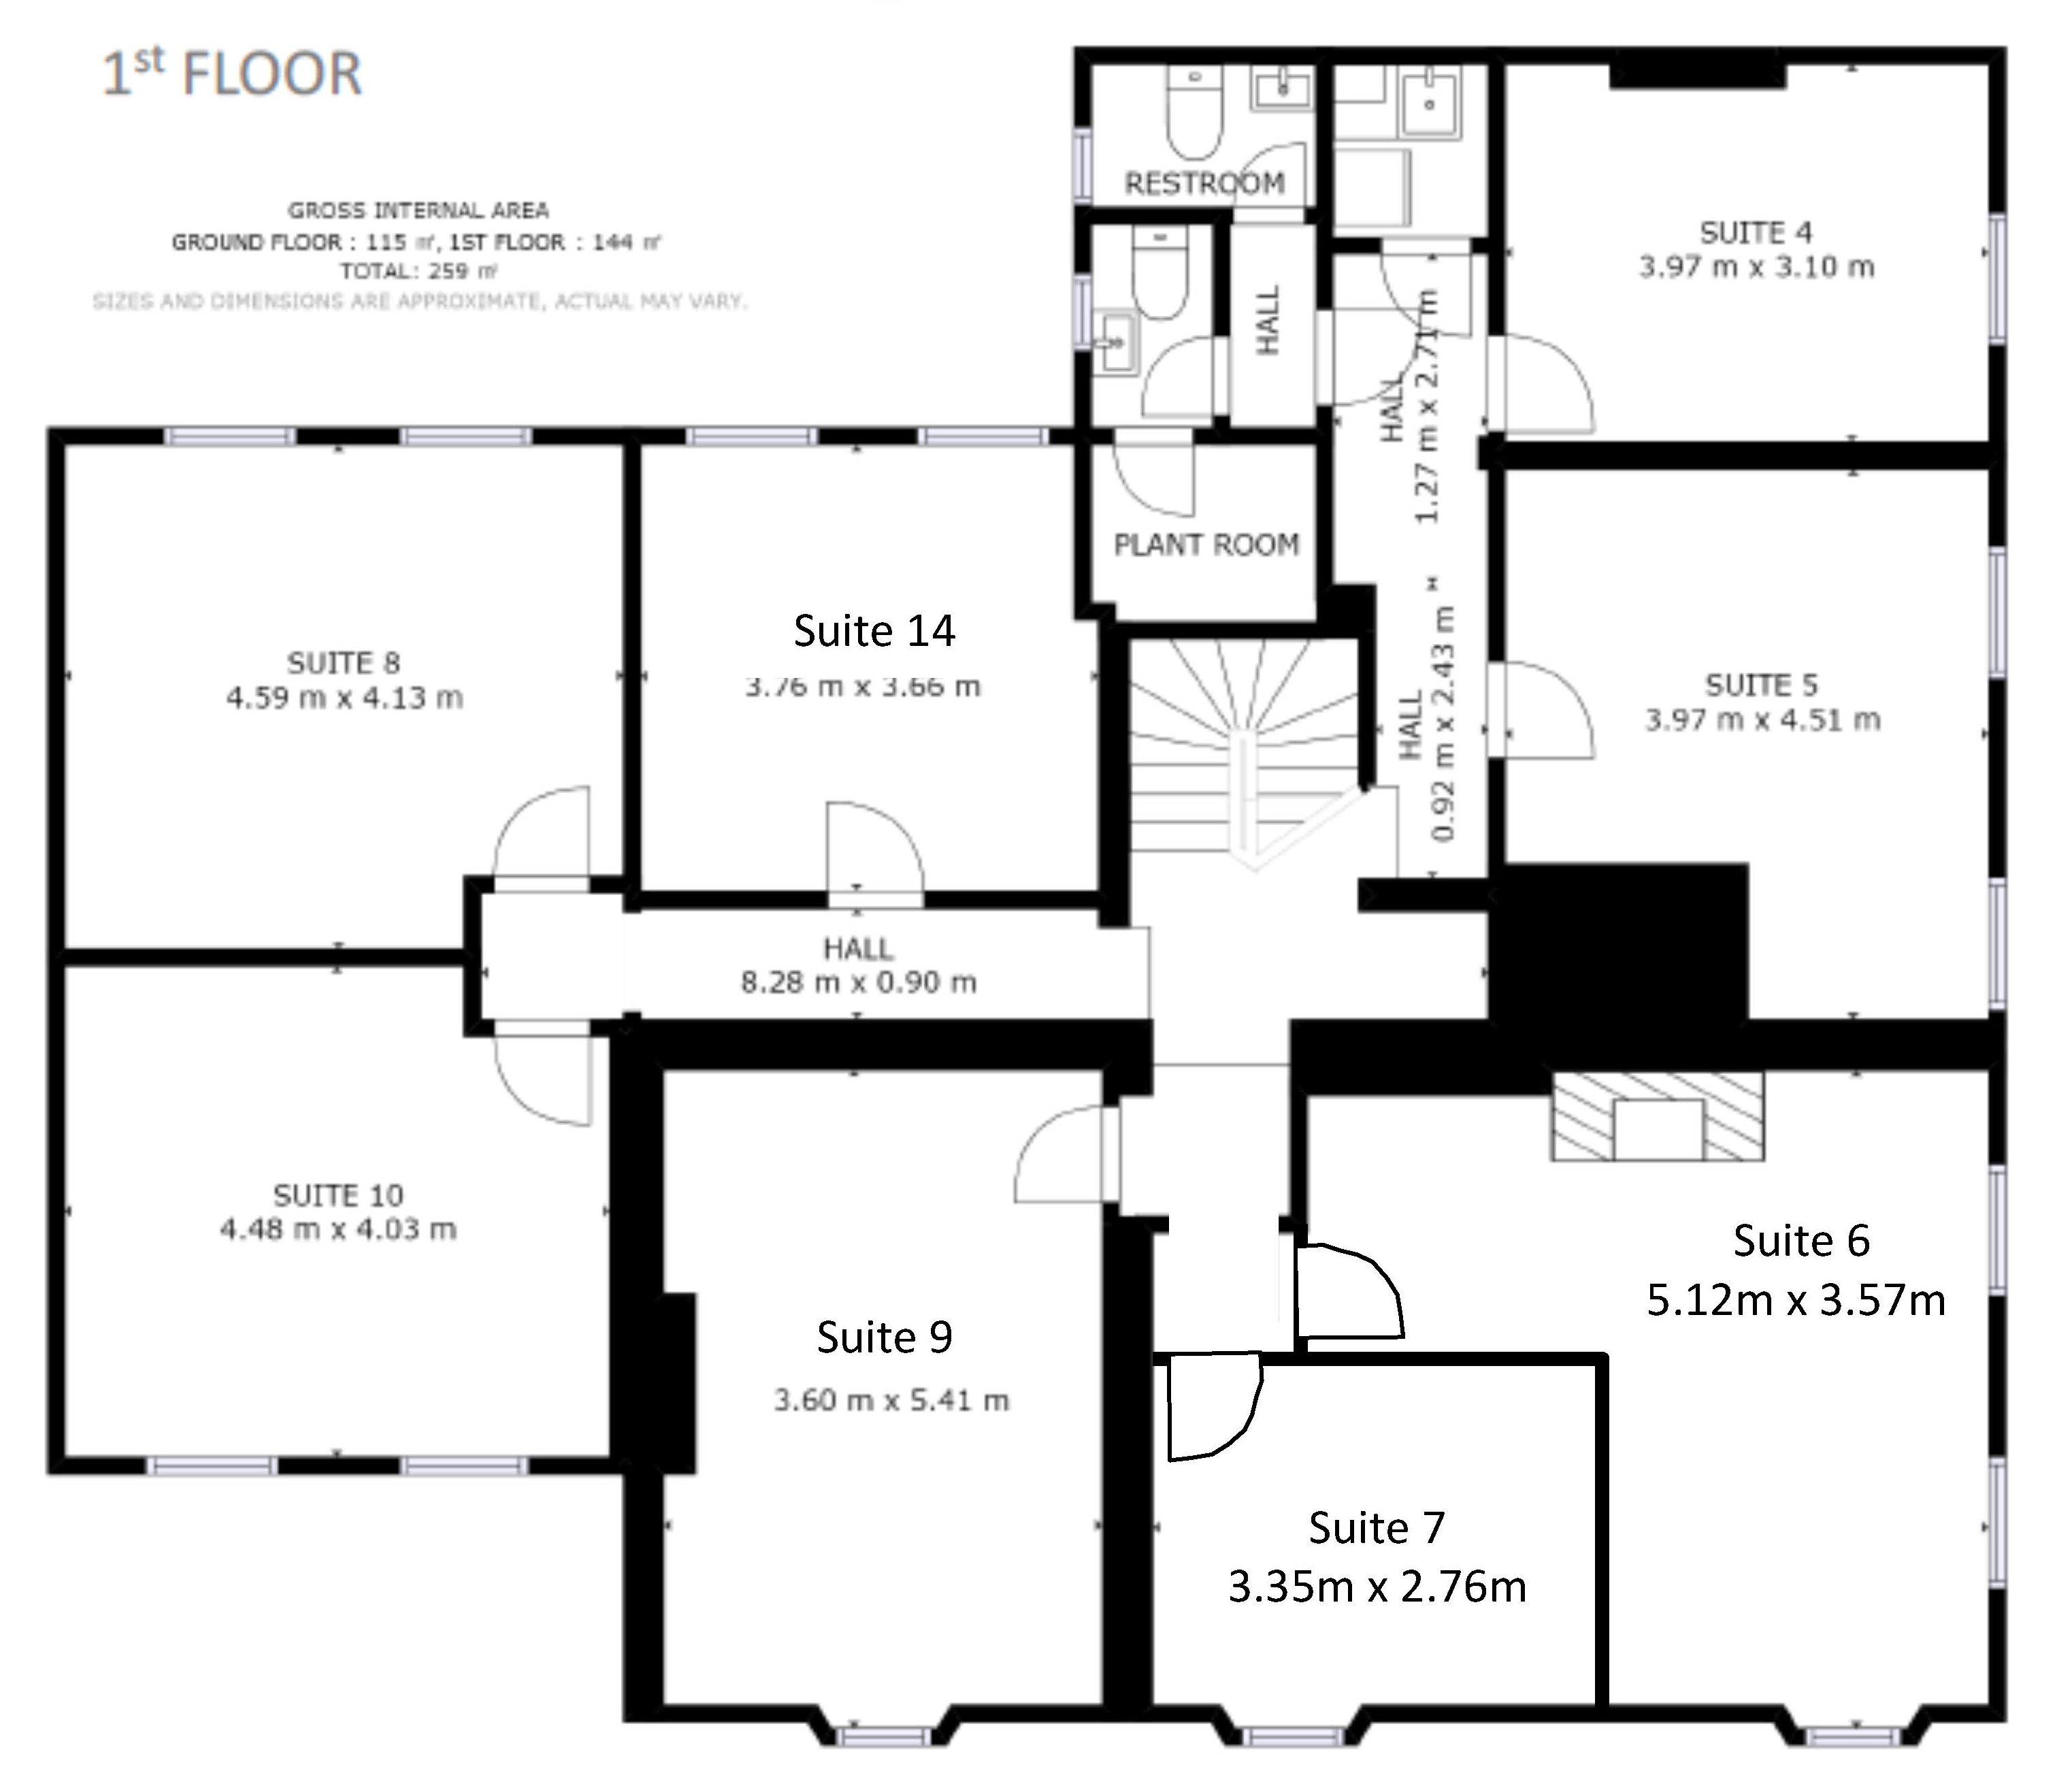 First floor plan of office space to rent in St Neots at Bellingham House